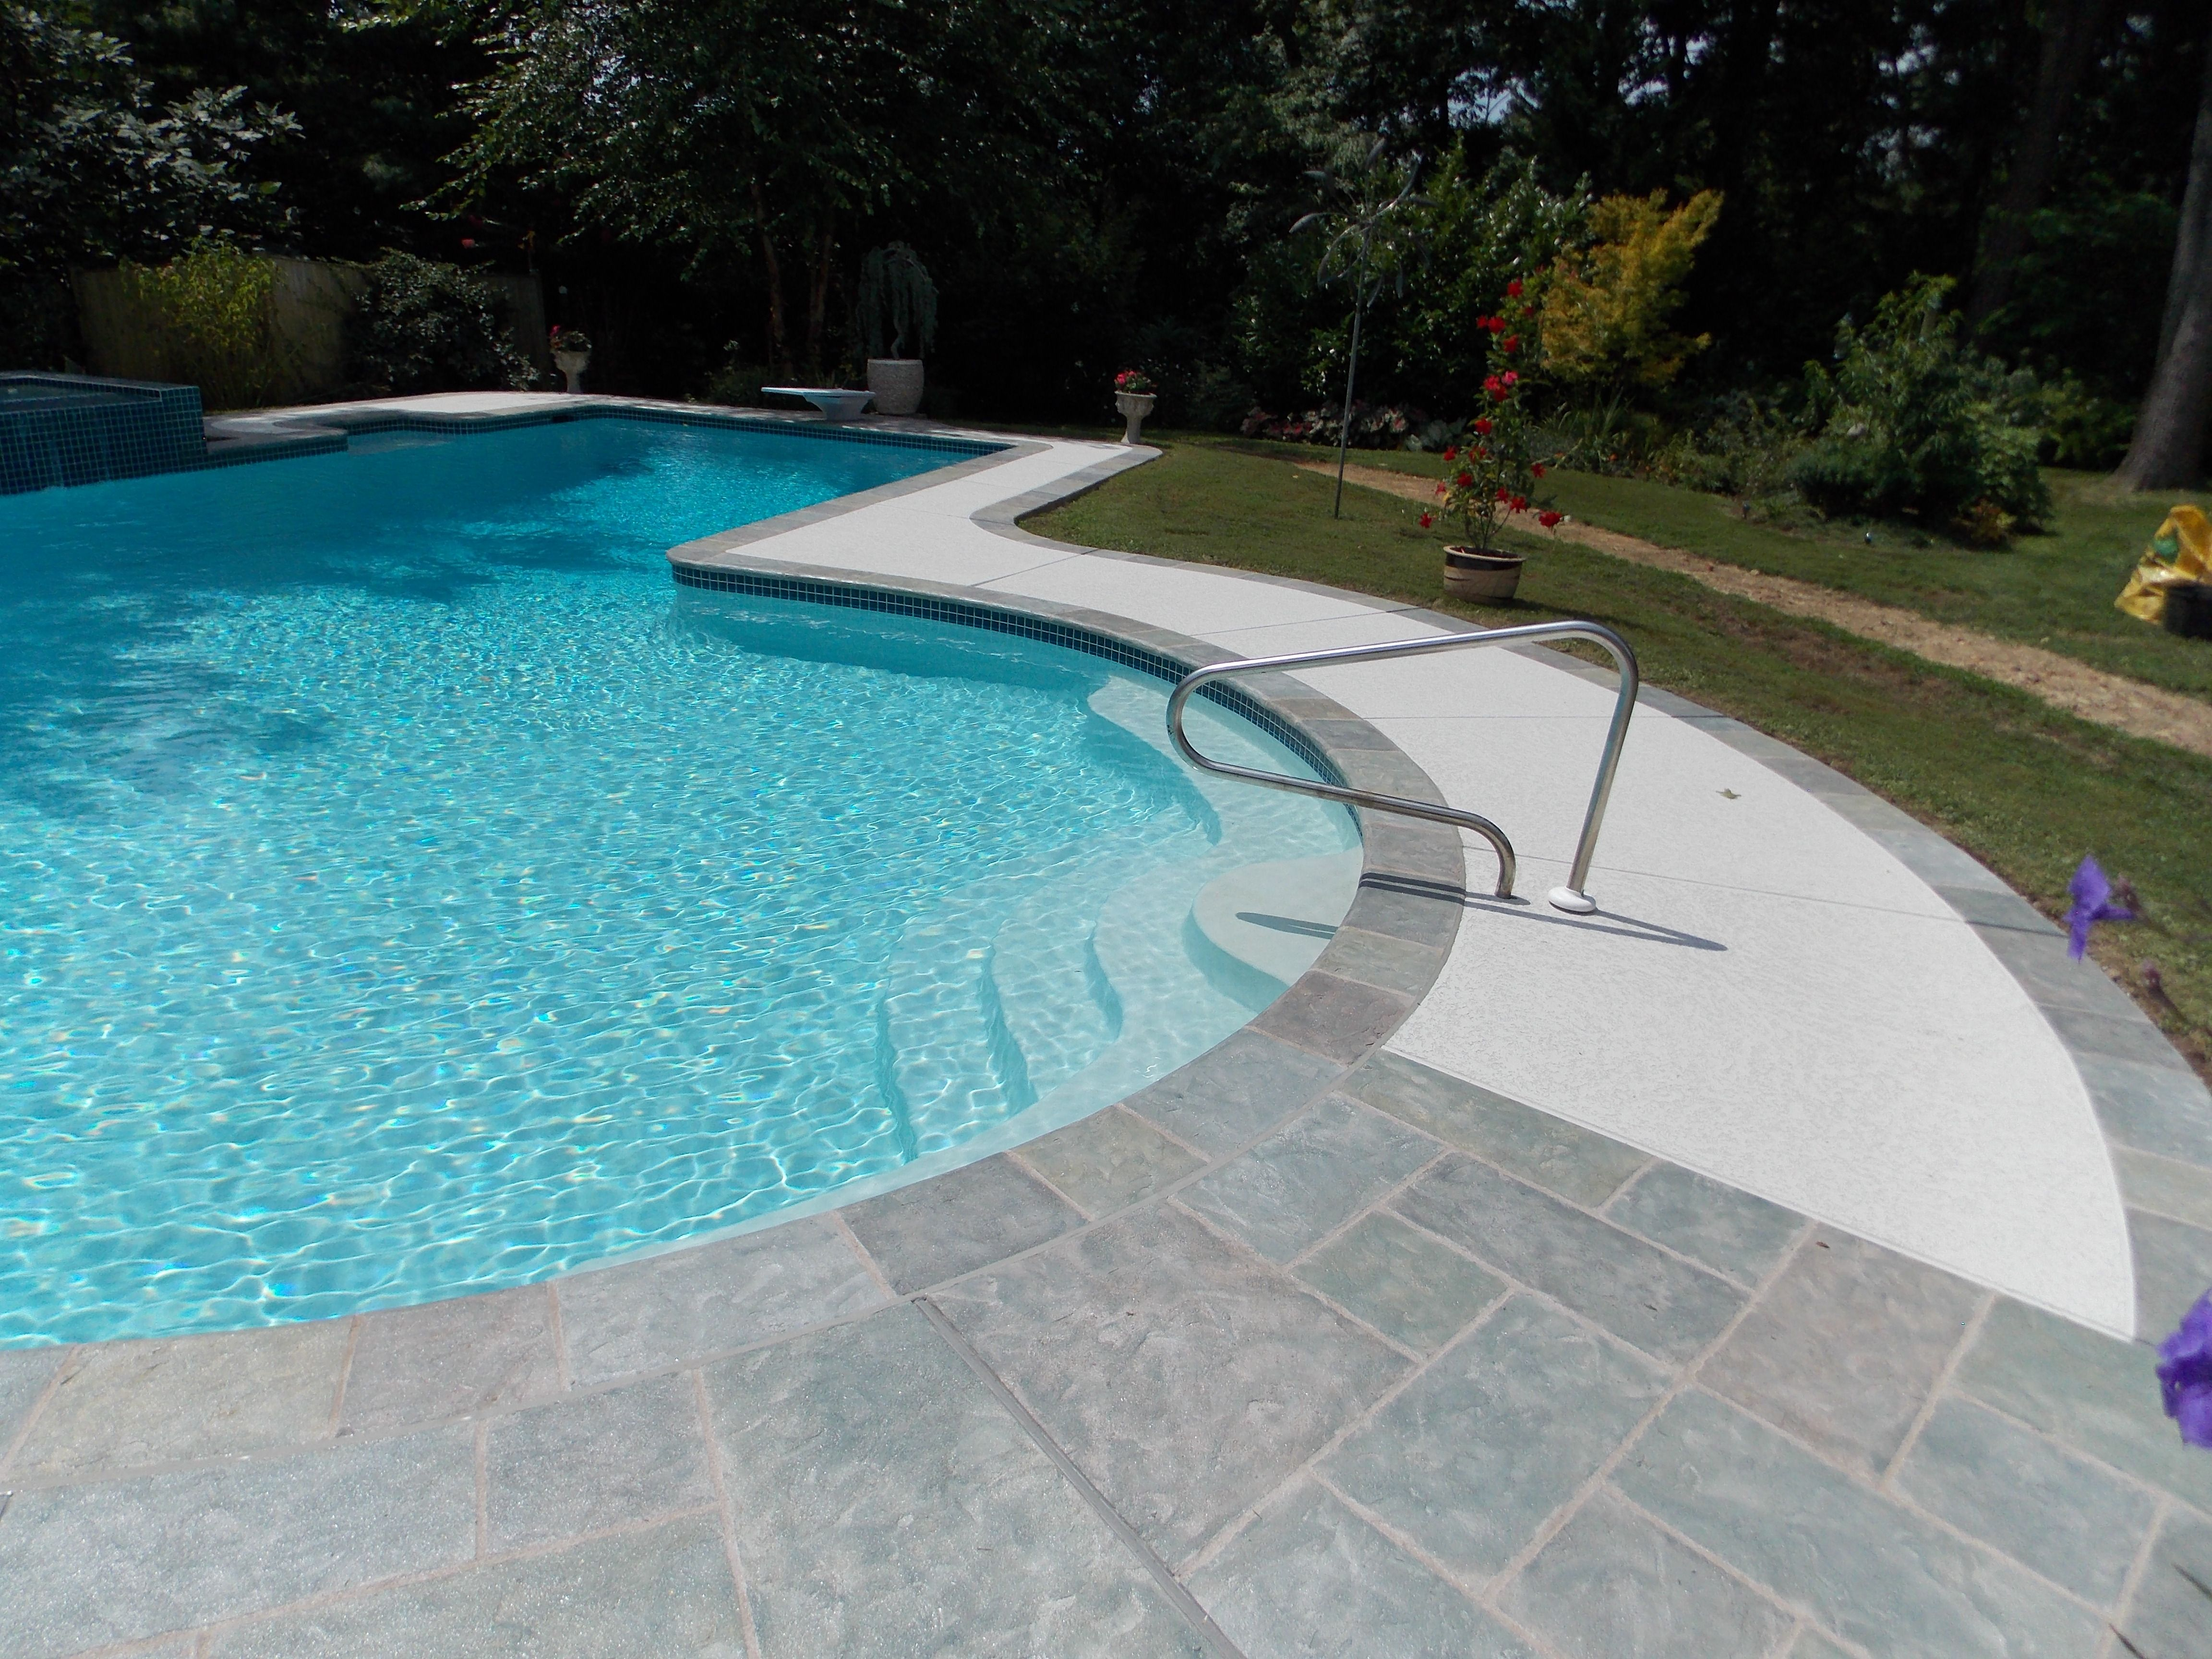 Nothing frames sparkling pool better than a Stamped Concrete pool